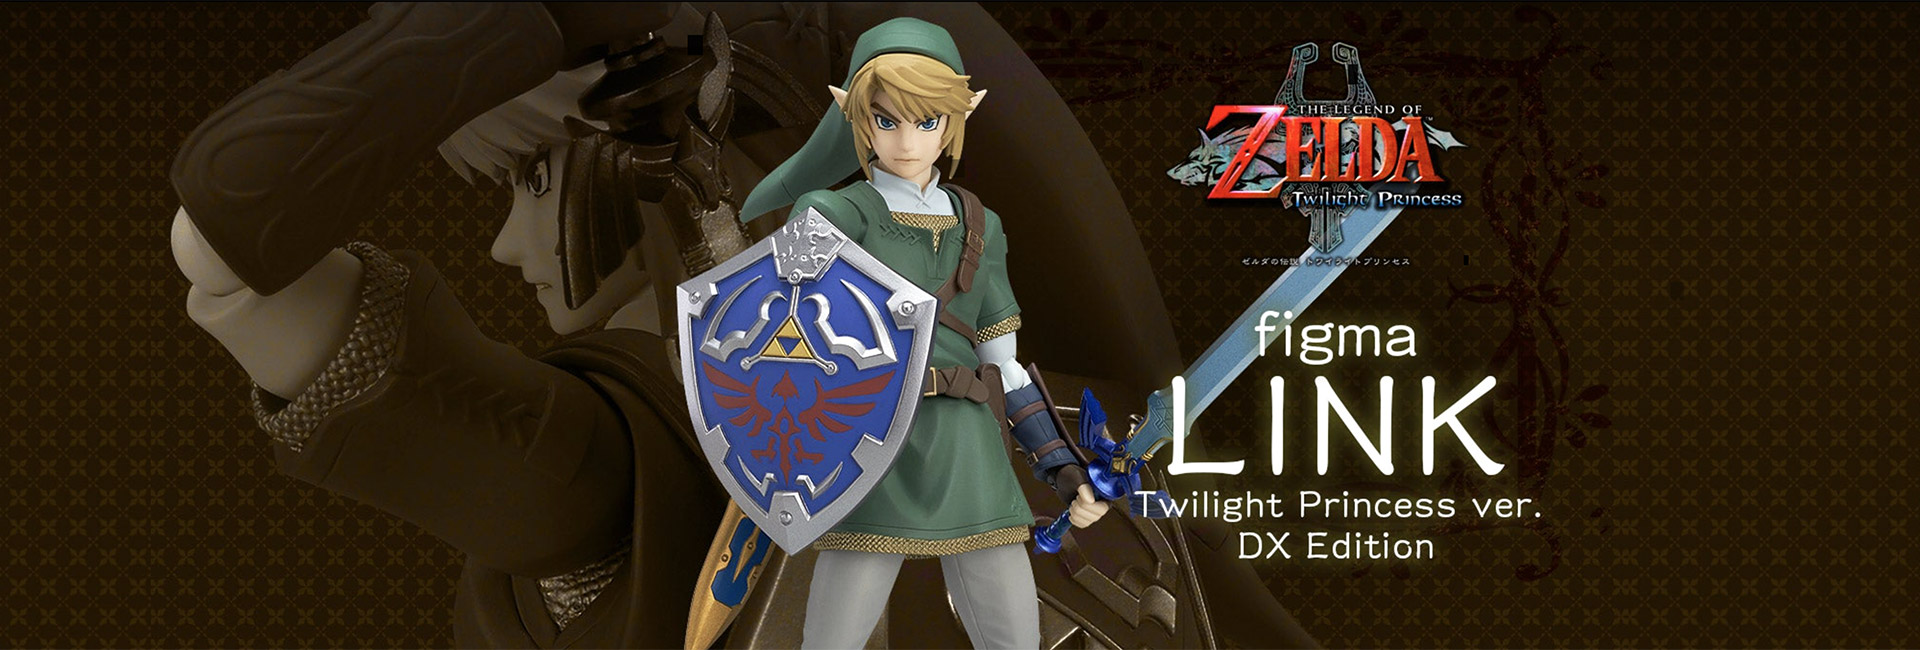 LINK Legend Of Zelda Twilight Princess